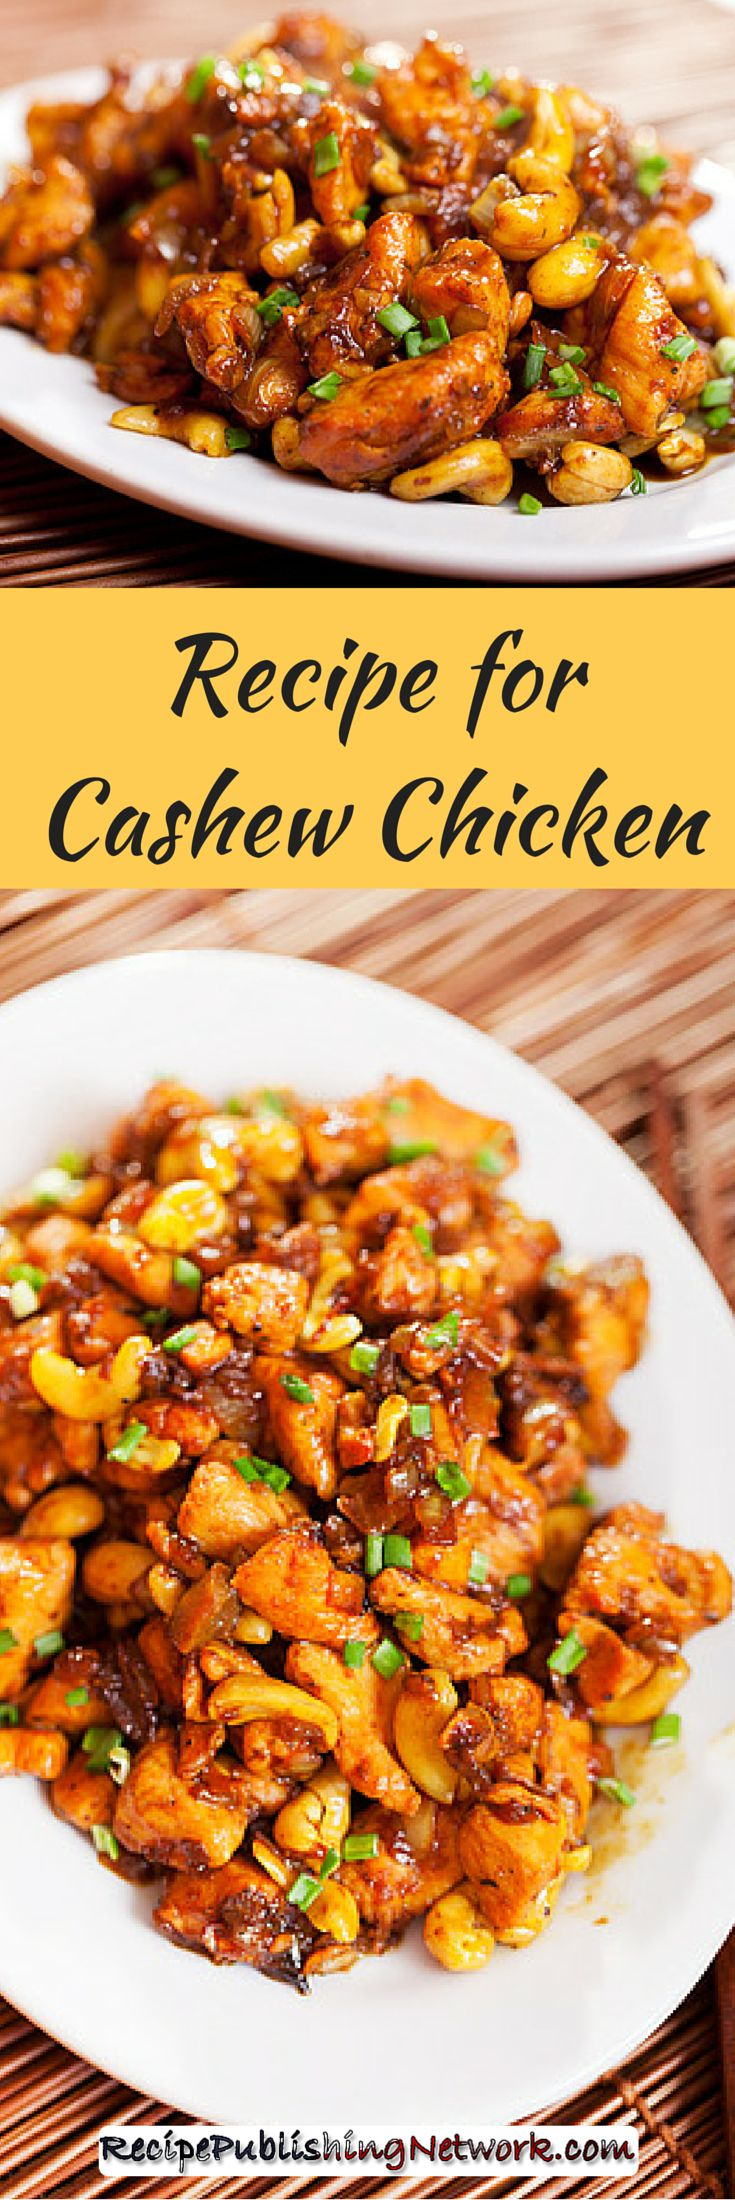 This cashew chicken recipe is so good you will think you are in a Chinese restaurant. Make this chicken recipe with cashew nuts for a true oriental feel and flavor for next dinner just add some white rice and you will have a nice filling meal that is all so good tasting.